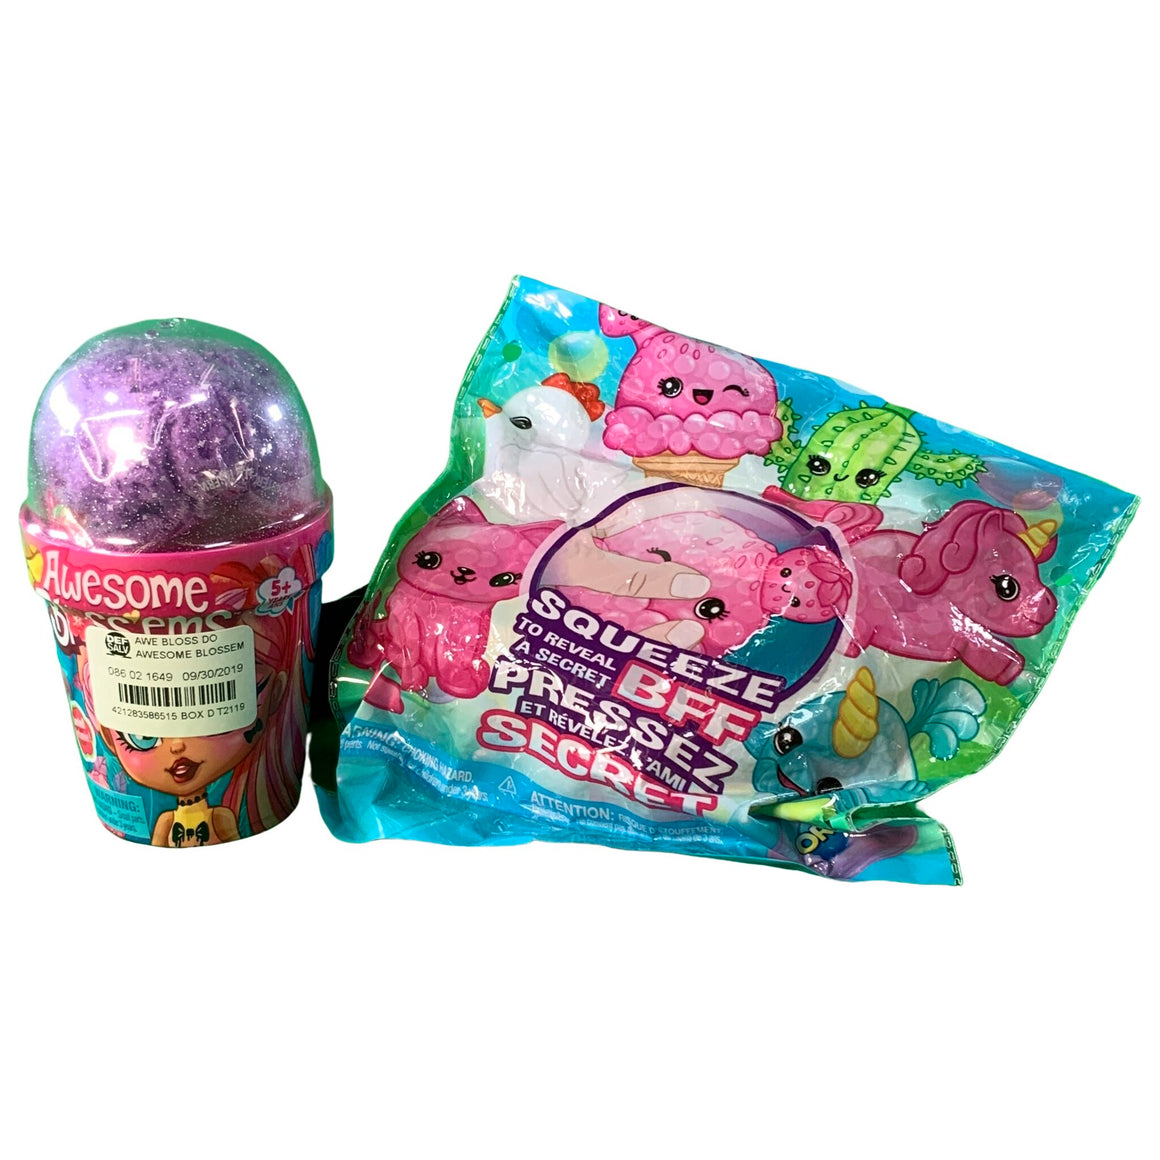 Secret Bff - Squeeze To Reveal (Original Series 1) & Magical Growing Flower - Themed Scented Collectible Doll Blind Pack -